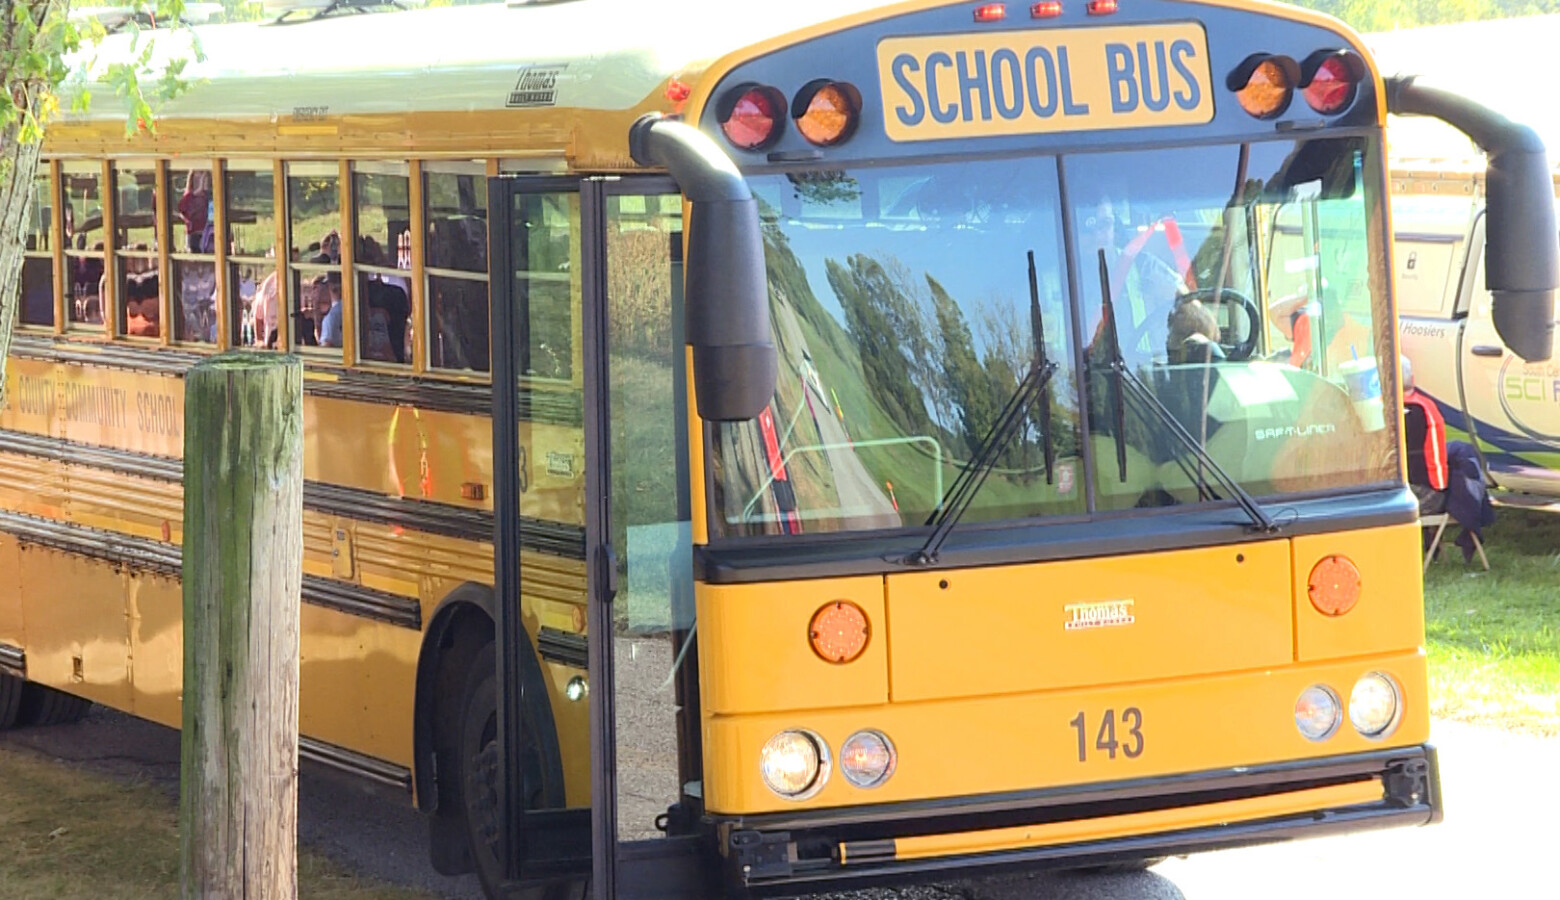 The latest effort for Kokomo school employees to unionize was spurred by bus drivers and aides who are worried about changes to their pay and understaffing. (Jeanie Lindsay/IPB News)